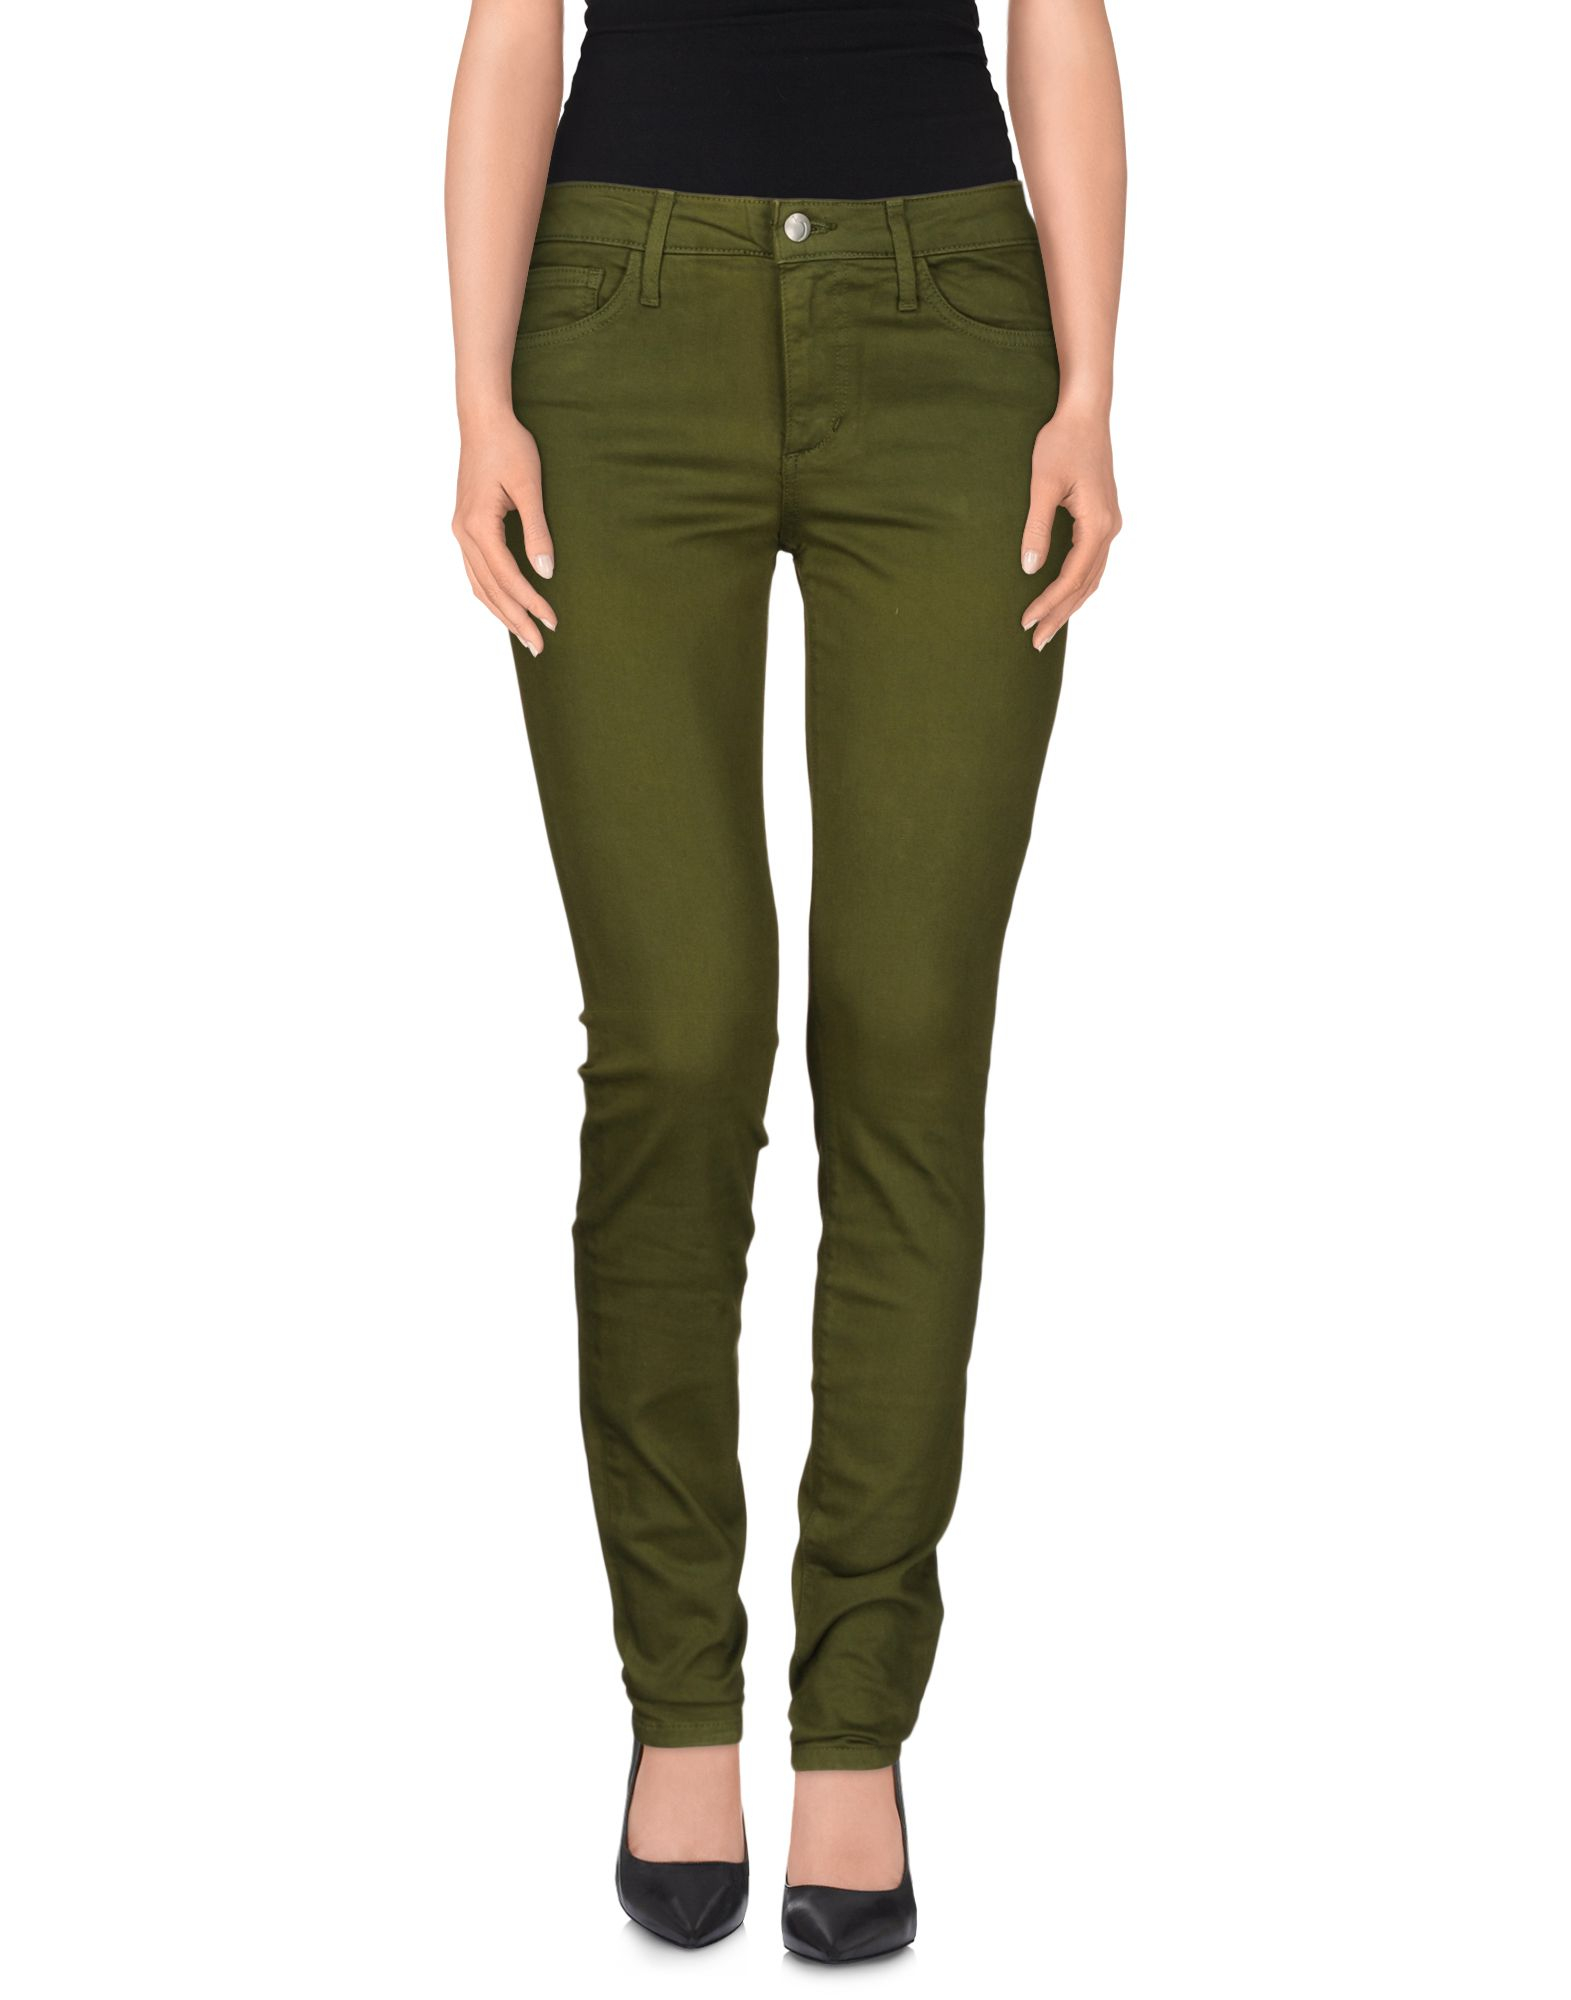 Find great deals on eBay for green denim jeans. Shop with confidence.